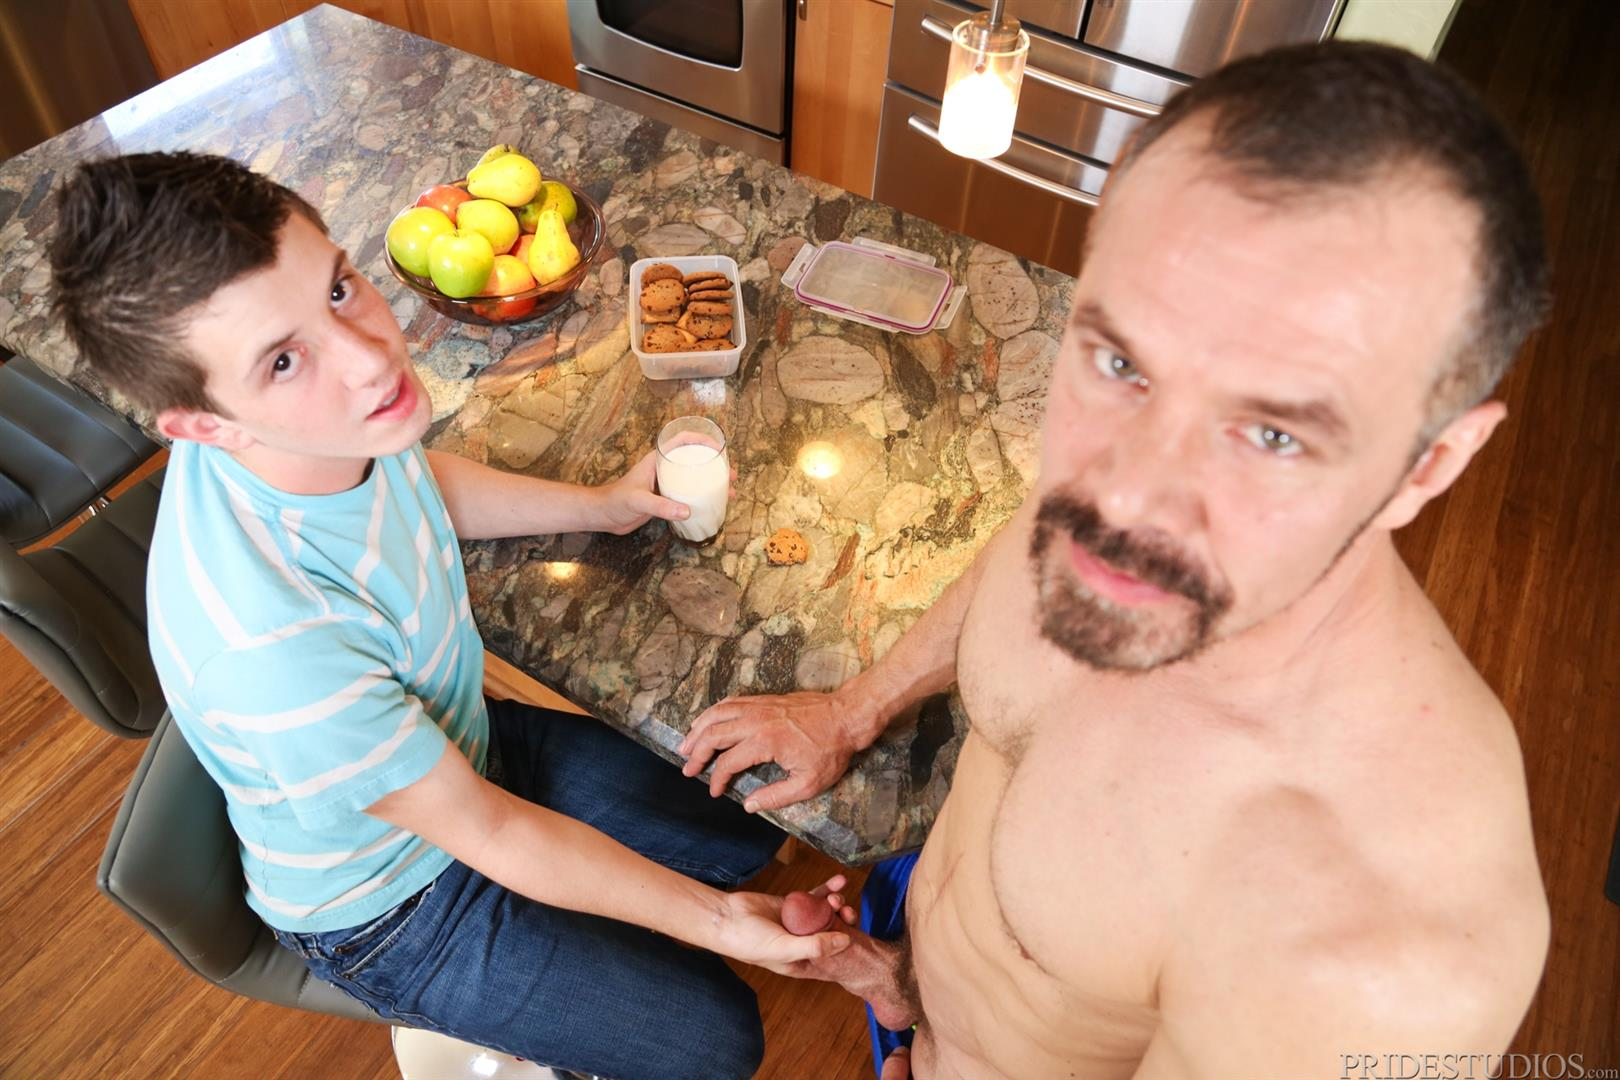 Cock Virgins Max Sargent and Jordan Long Daddy Fucking A Younger Guy Big Cock Amateur Gay Porn 04 Jordan Long Gets Fucked By His Best Friends Dad